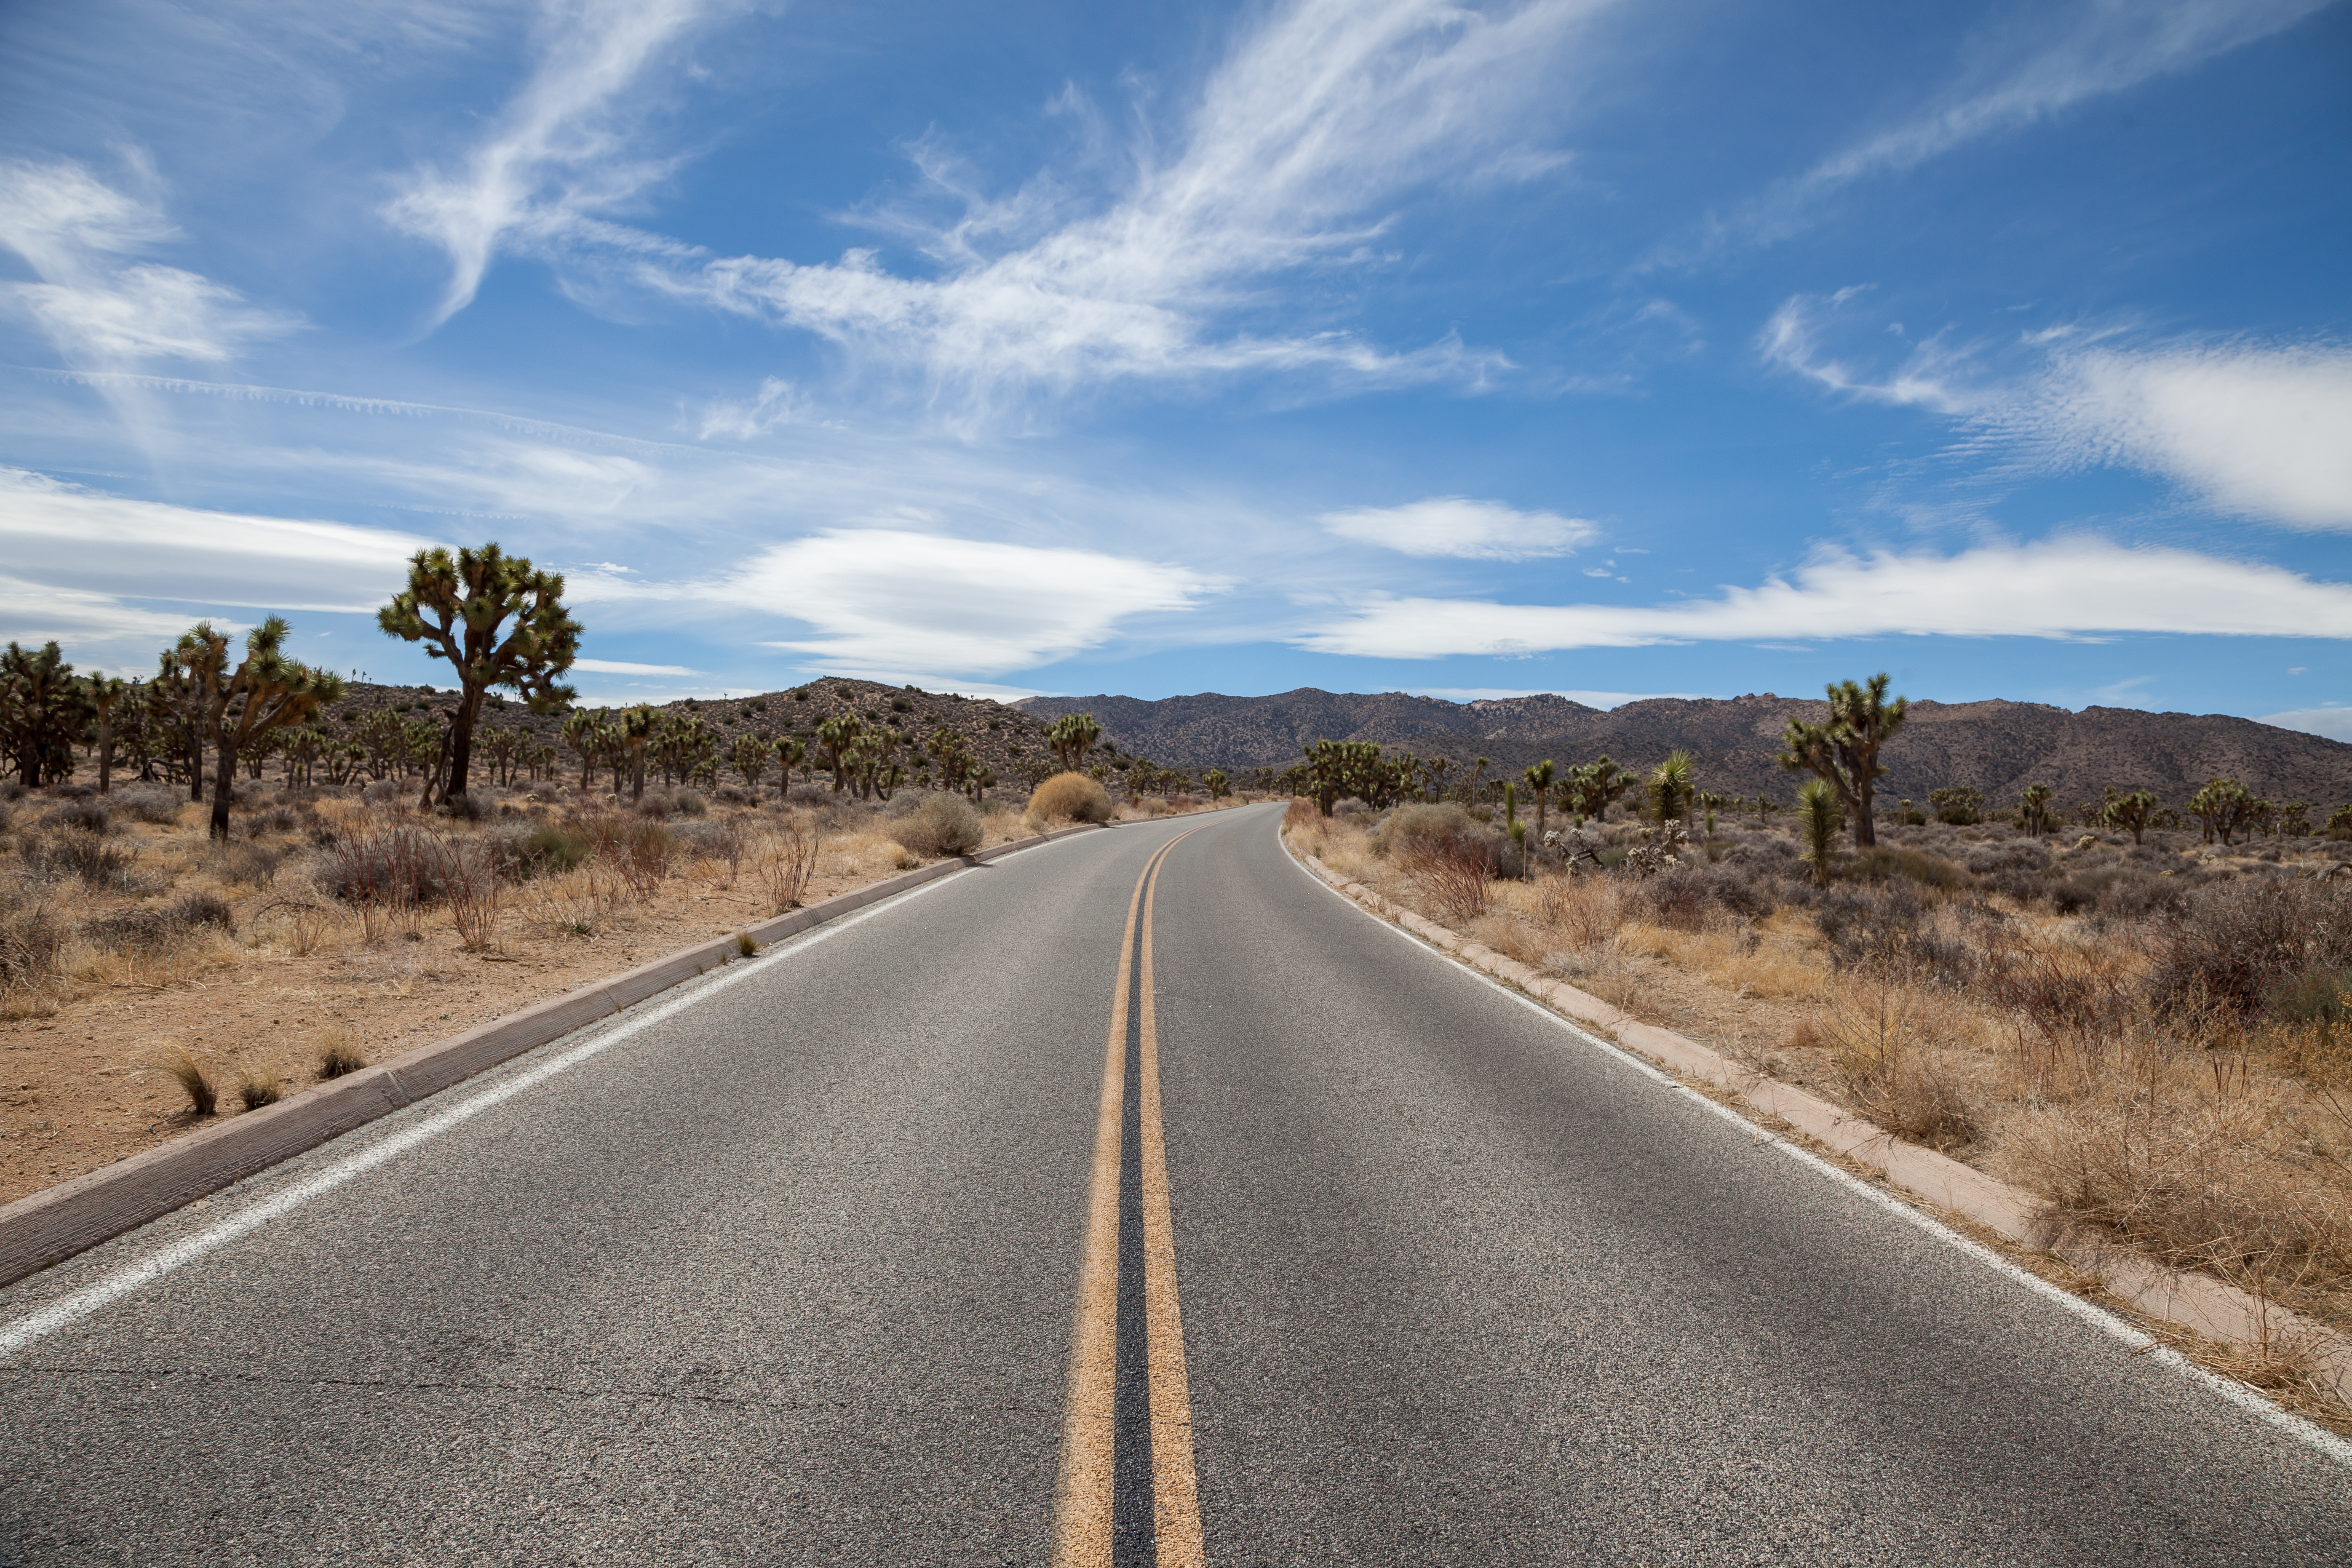 a road in Joshua Tree National Park